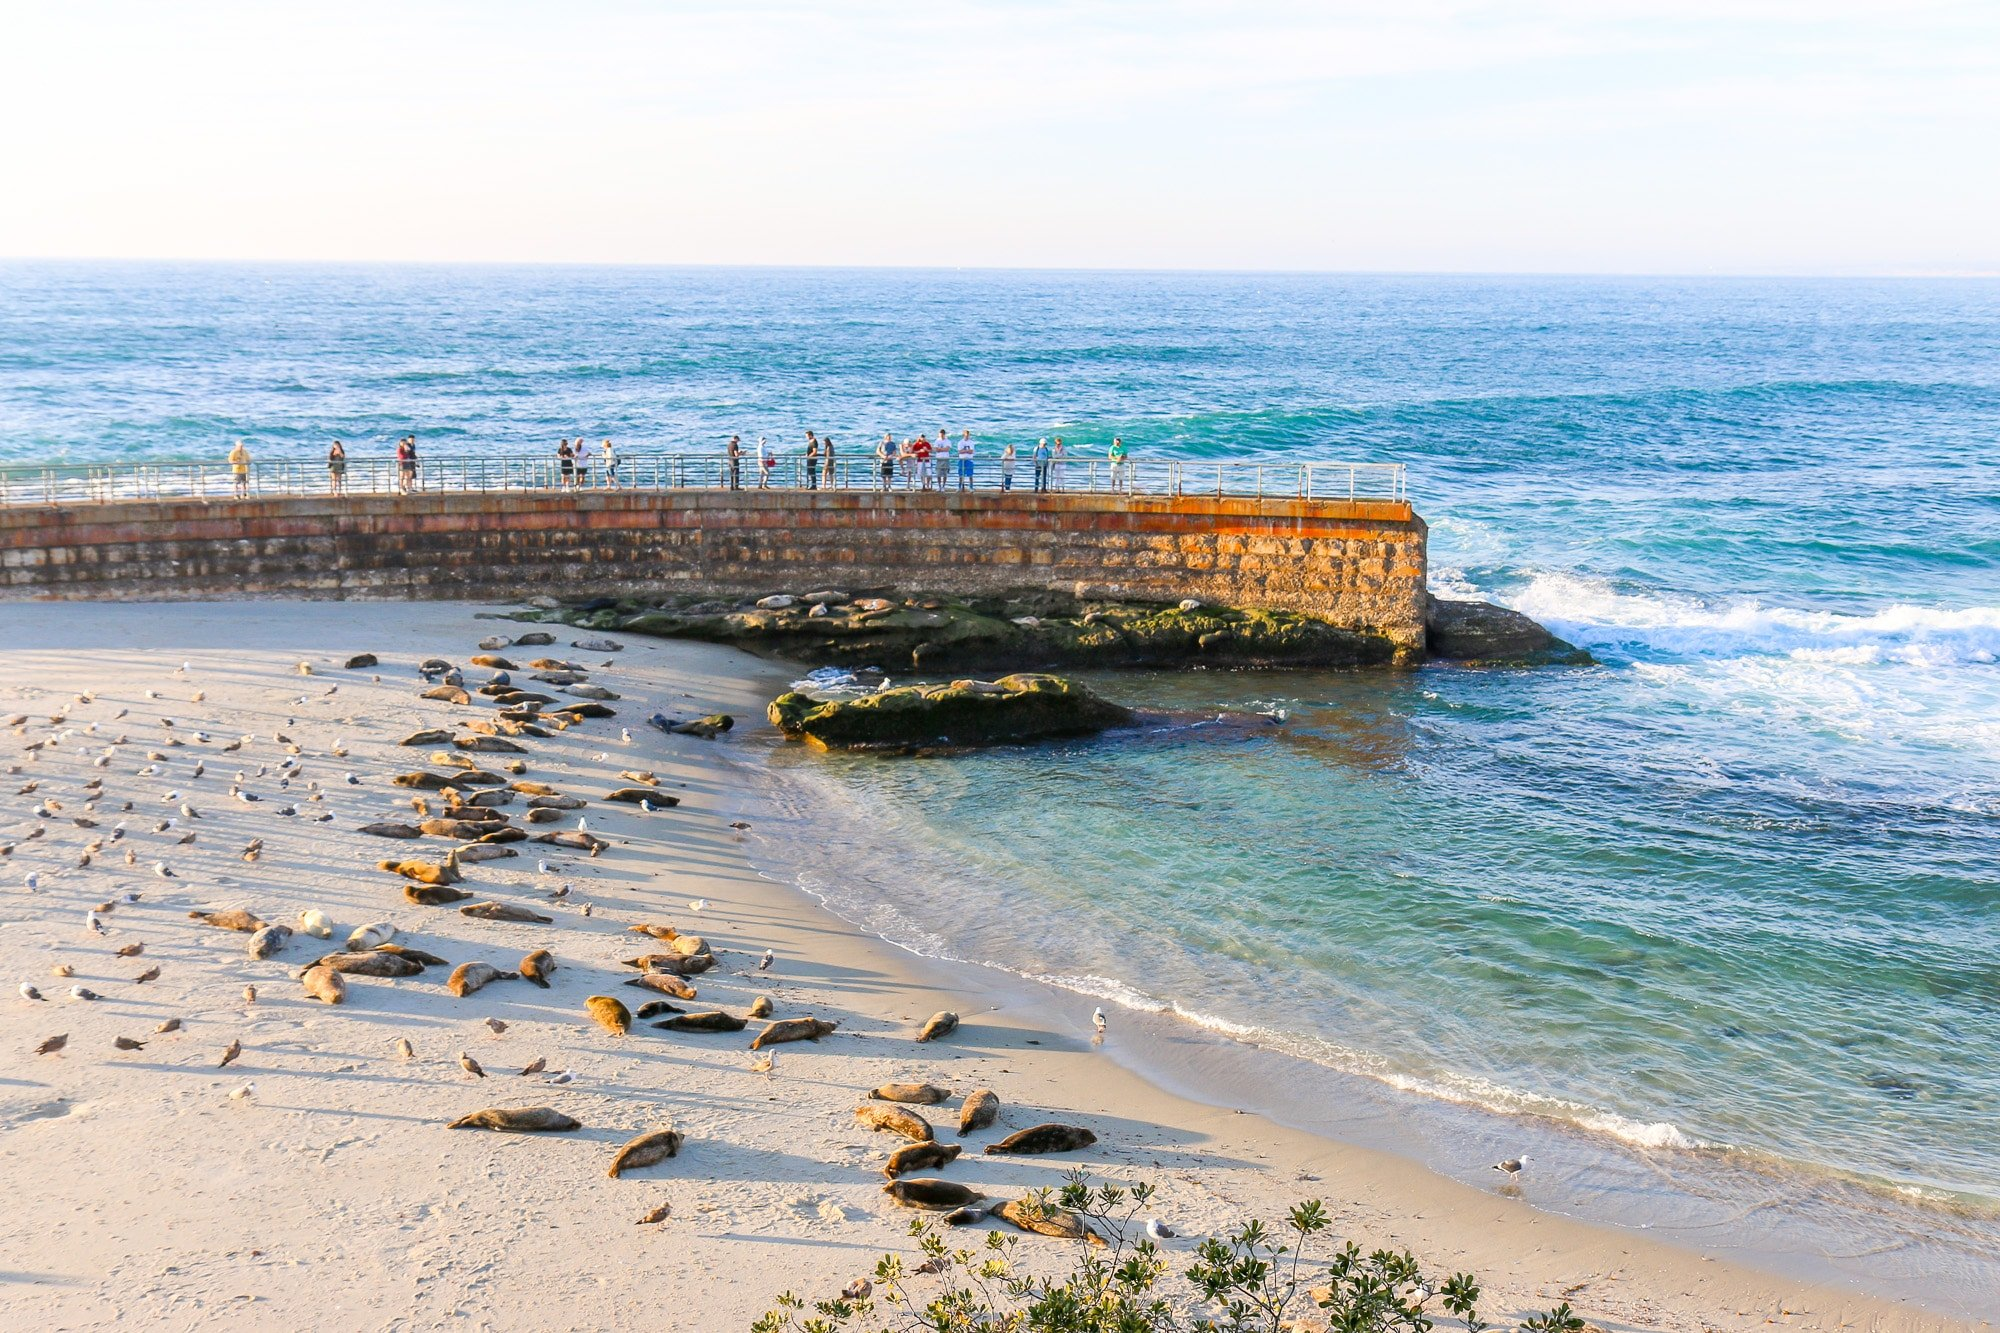 View of the seawall and harbor seals at Children's Pool beach in La Jolla